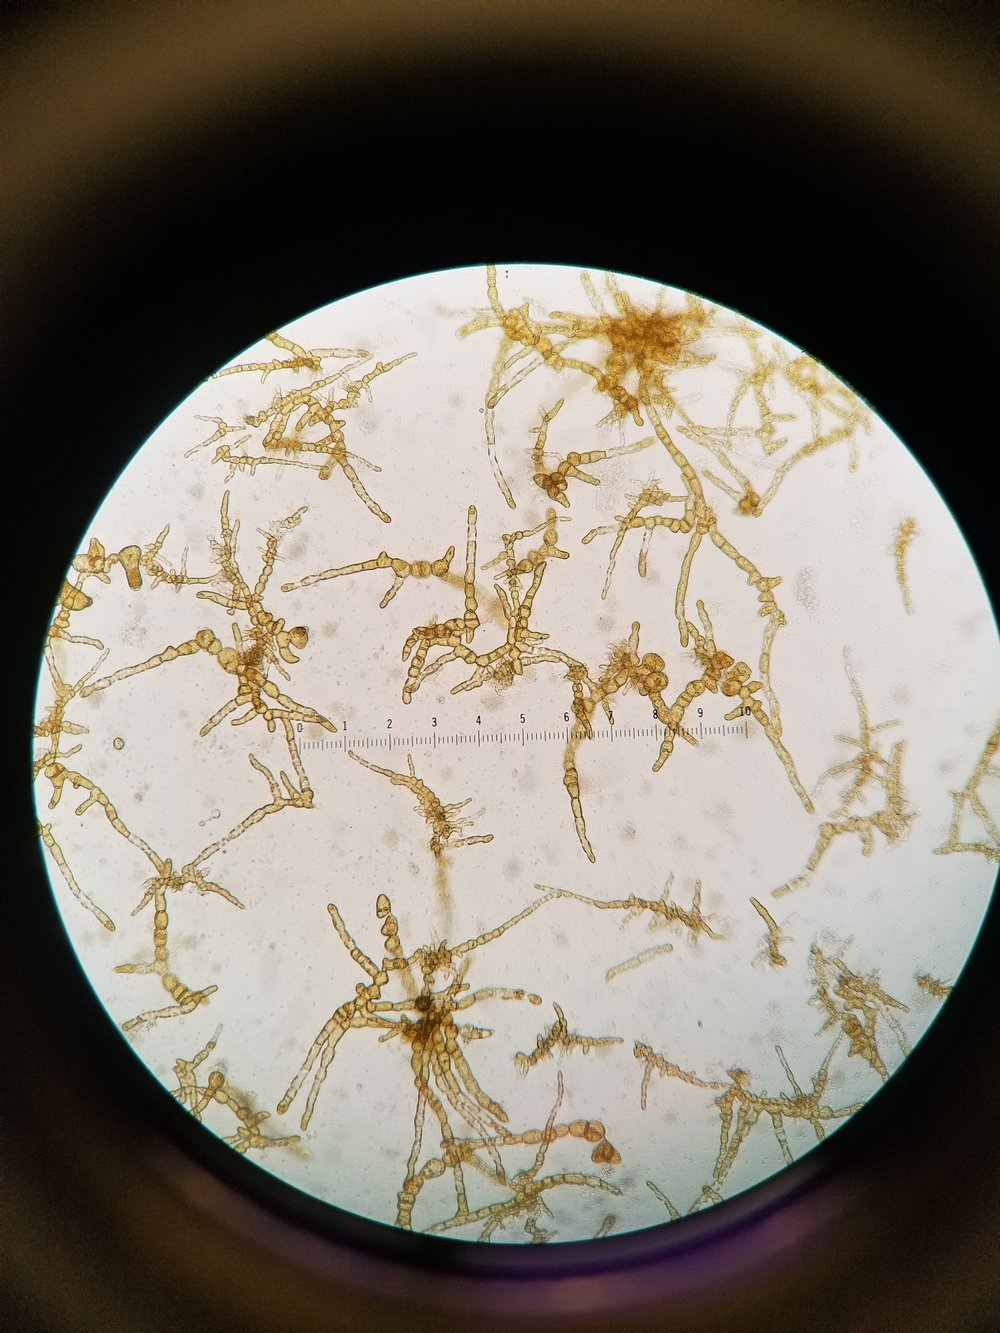 Kelp gametophytes, two weeks old